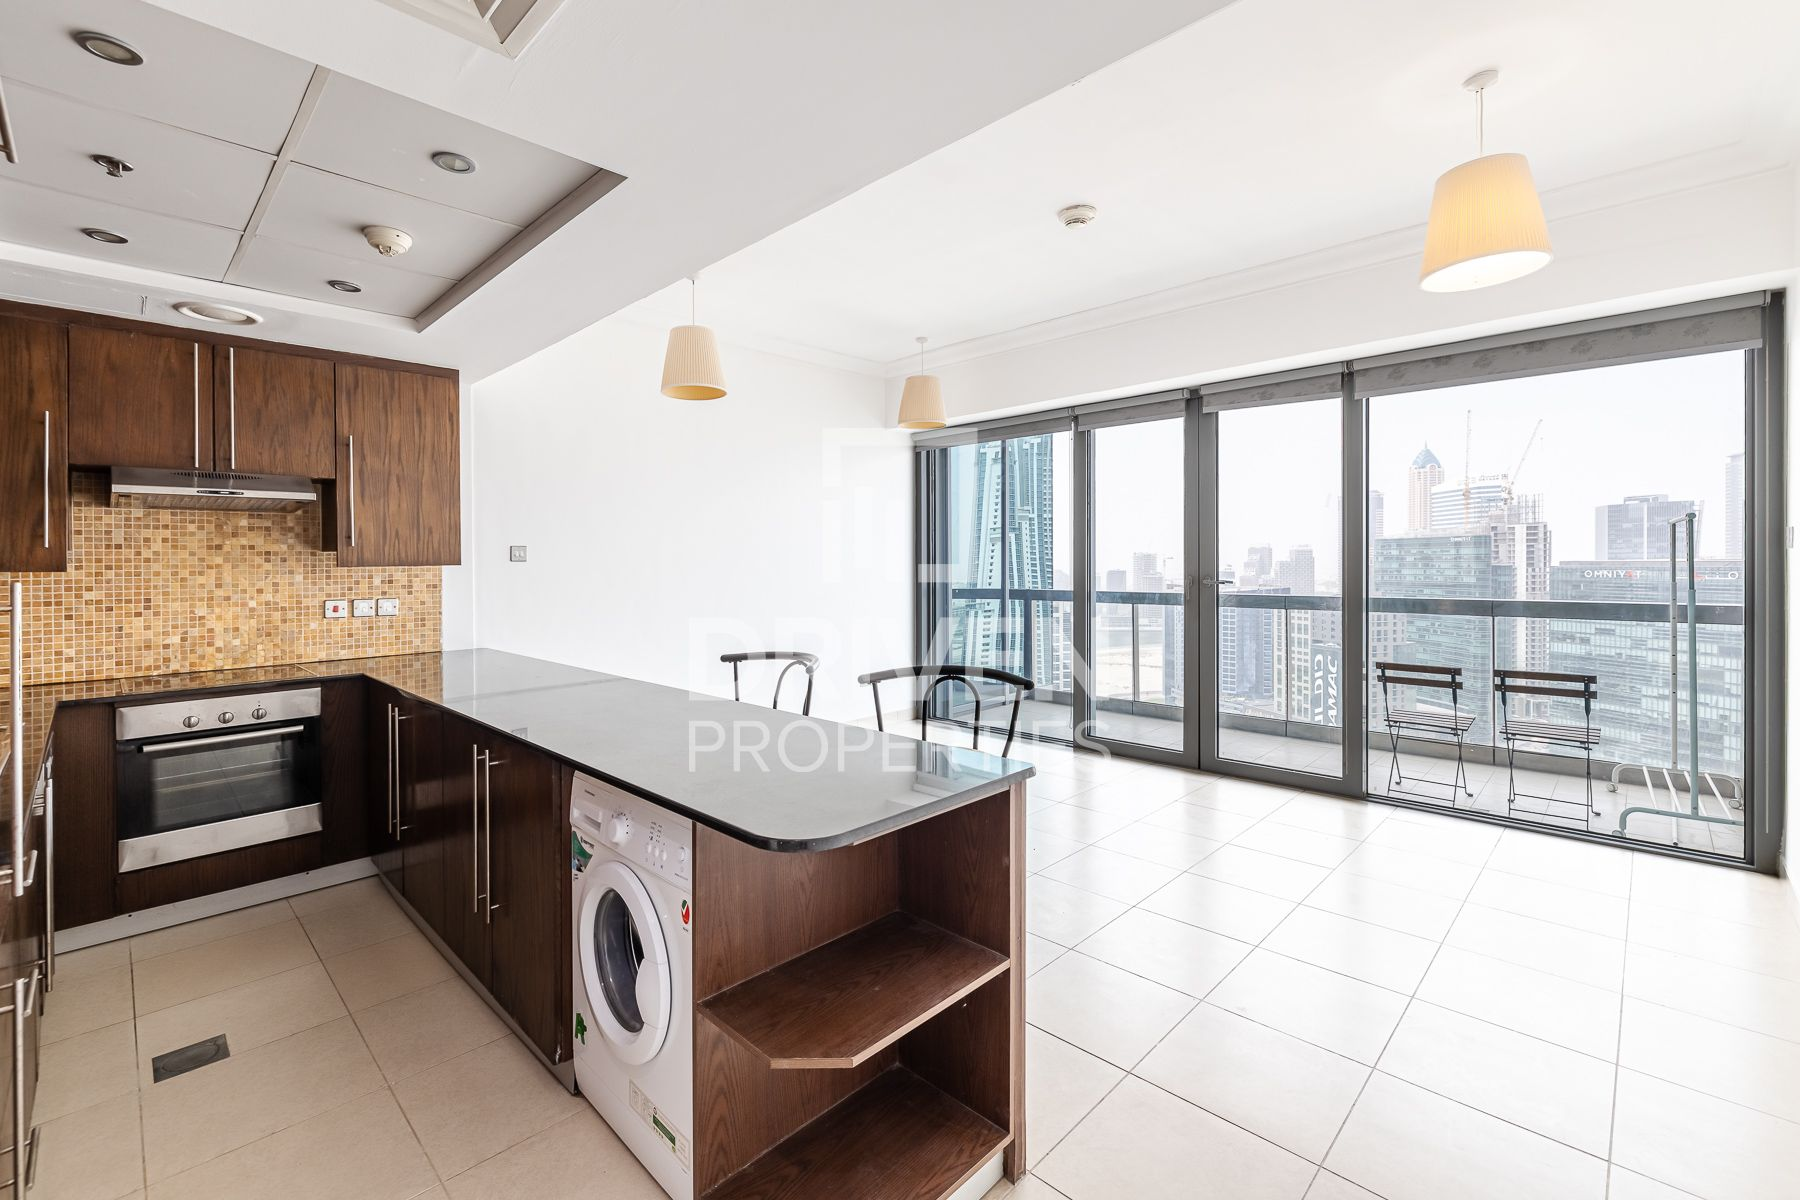 Prime Location | Affordable and Spacious